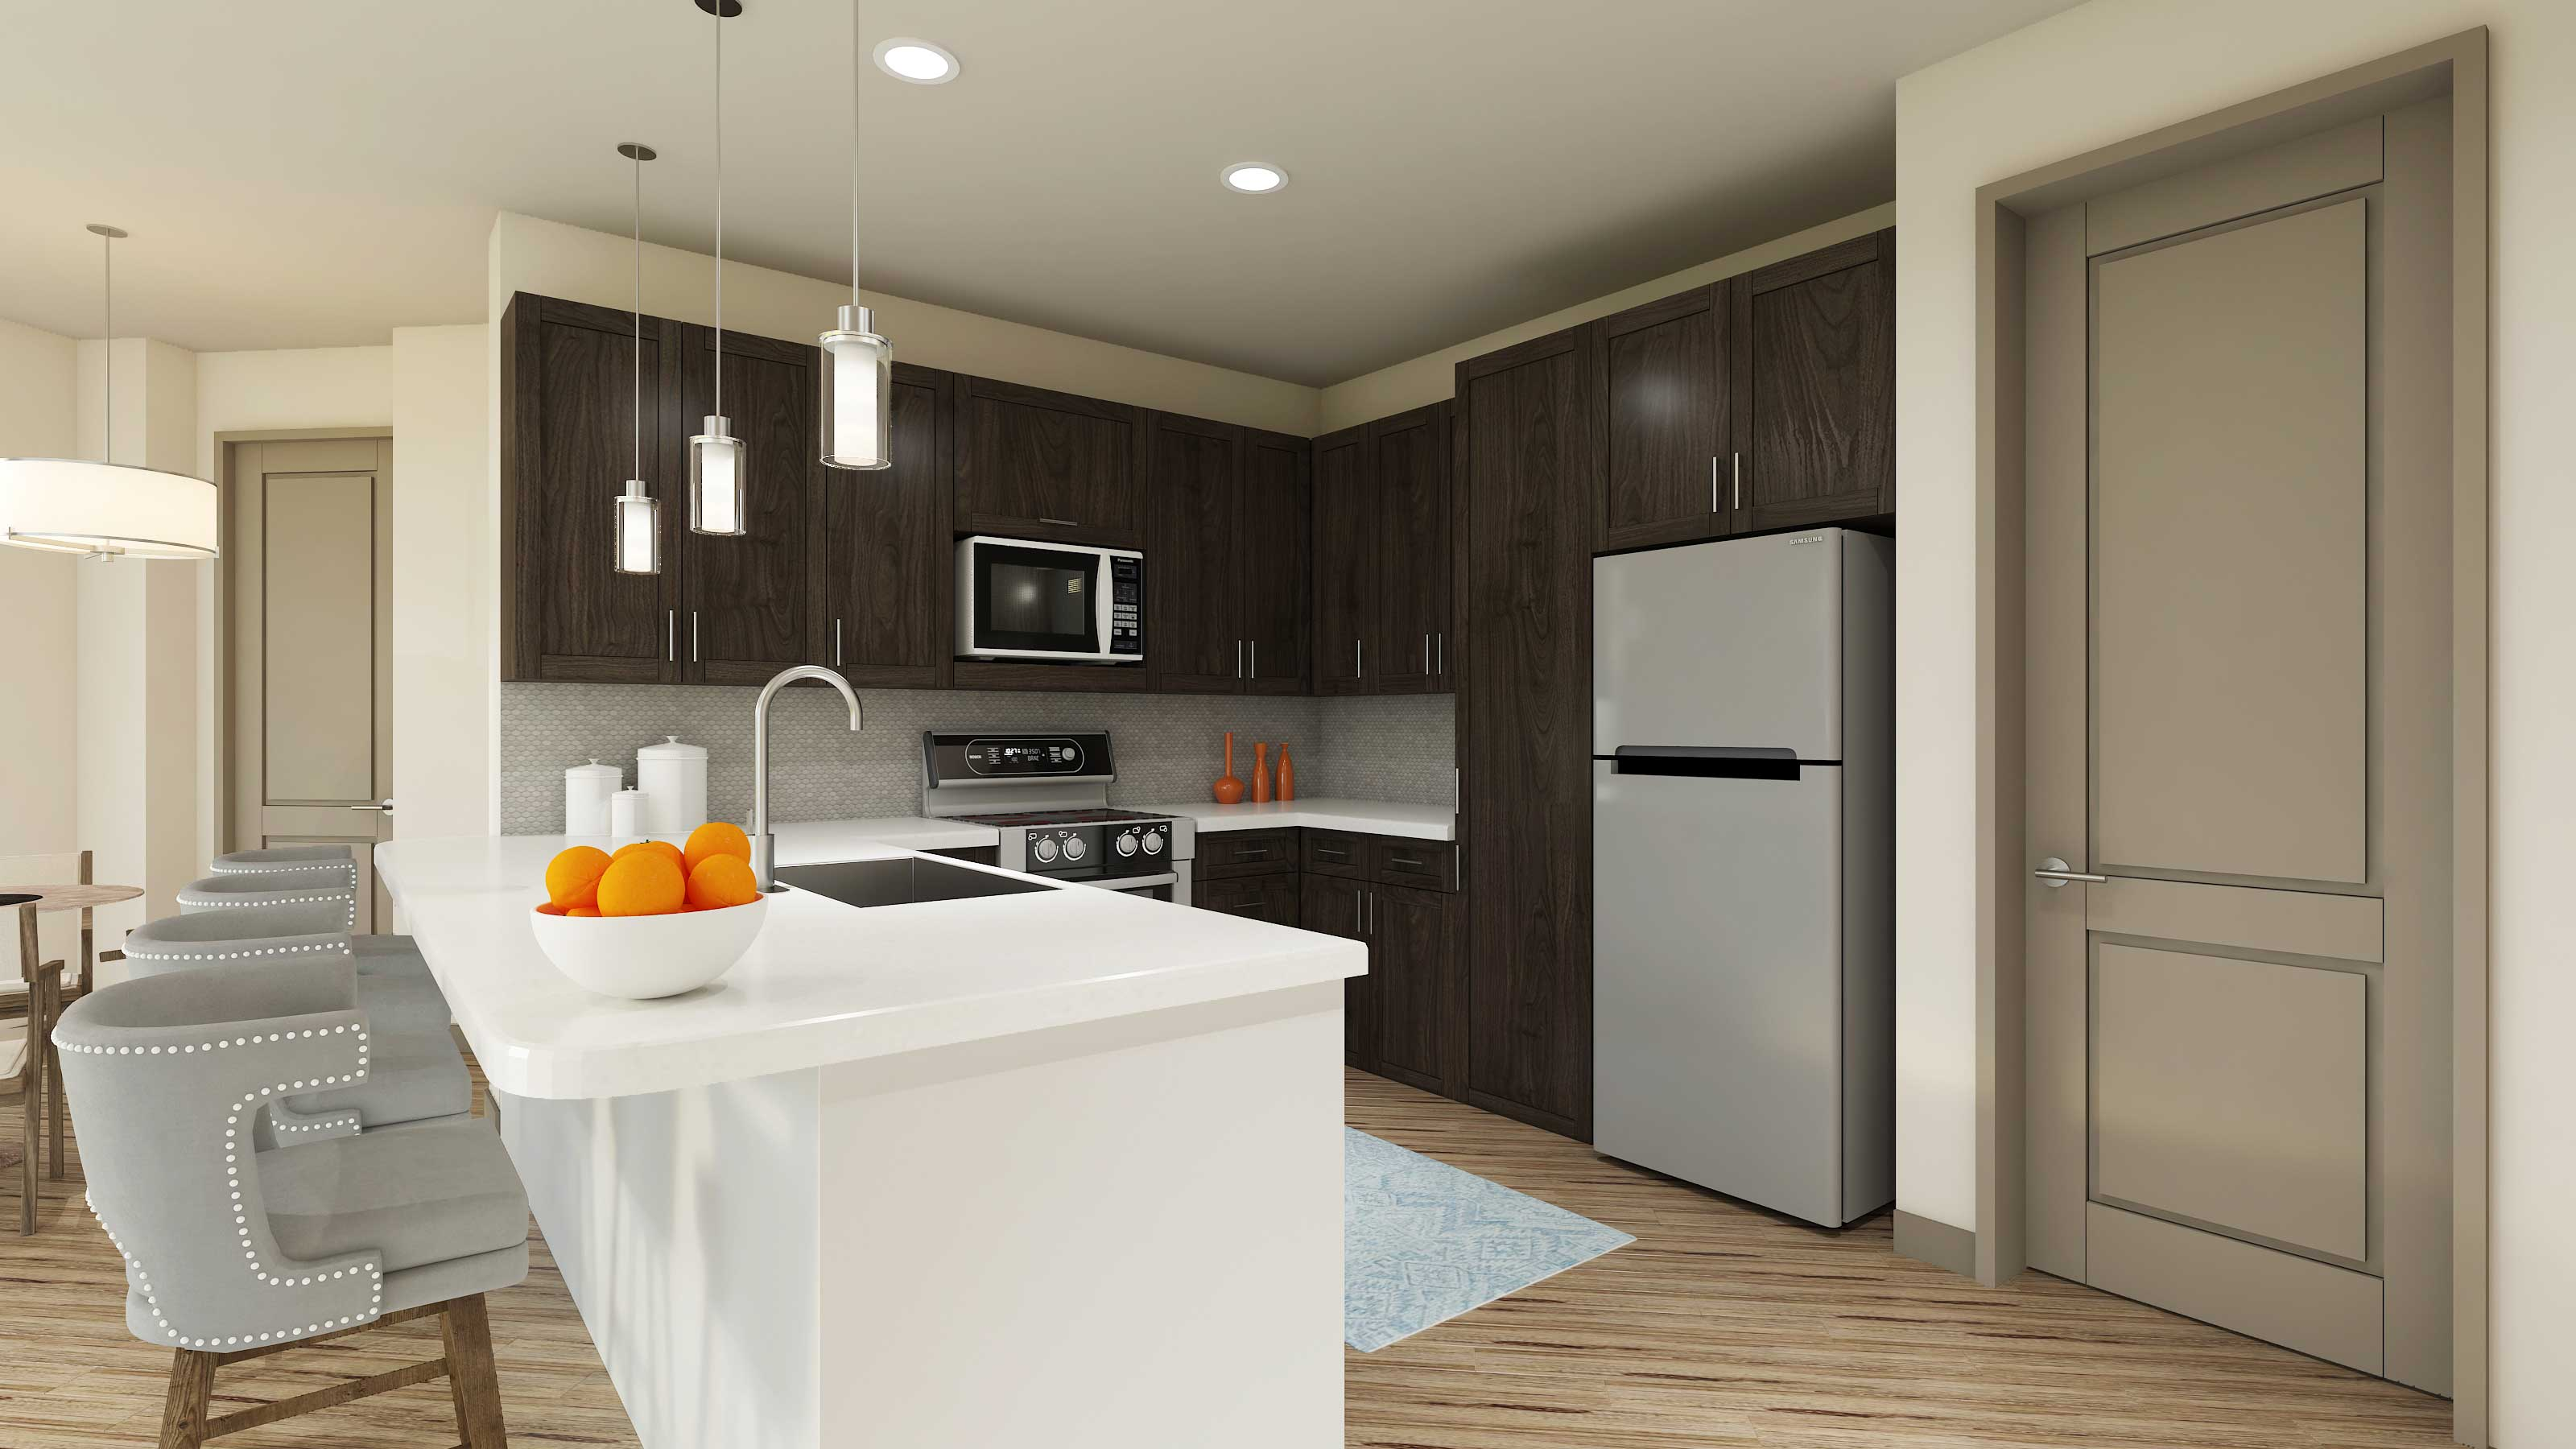 Gourmet Kitchens at The Reserve at Shoe Creek Apartments in Central, Louisiana